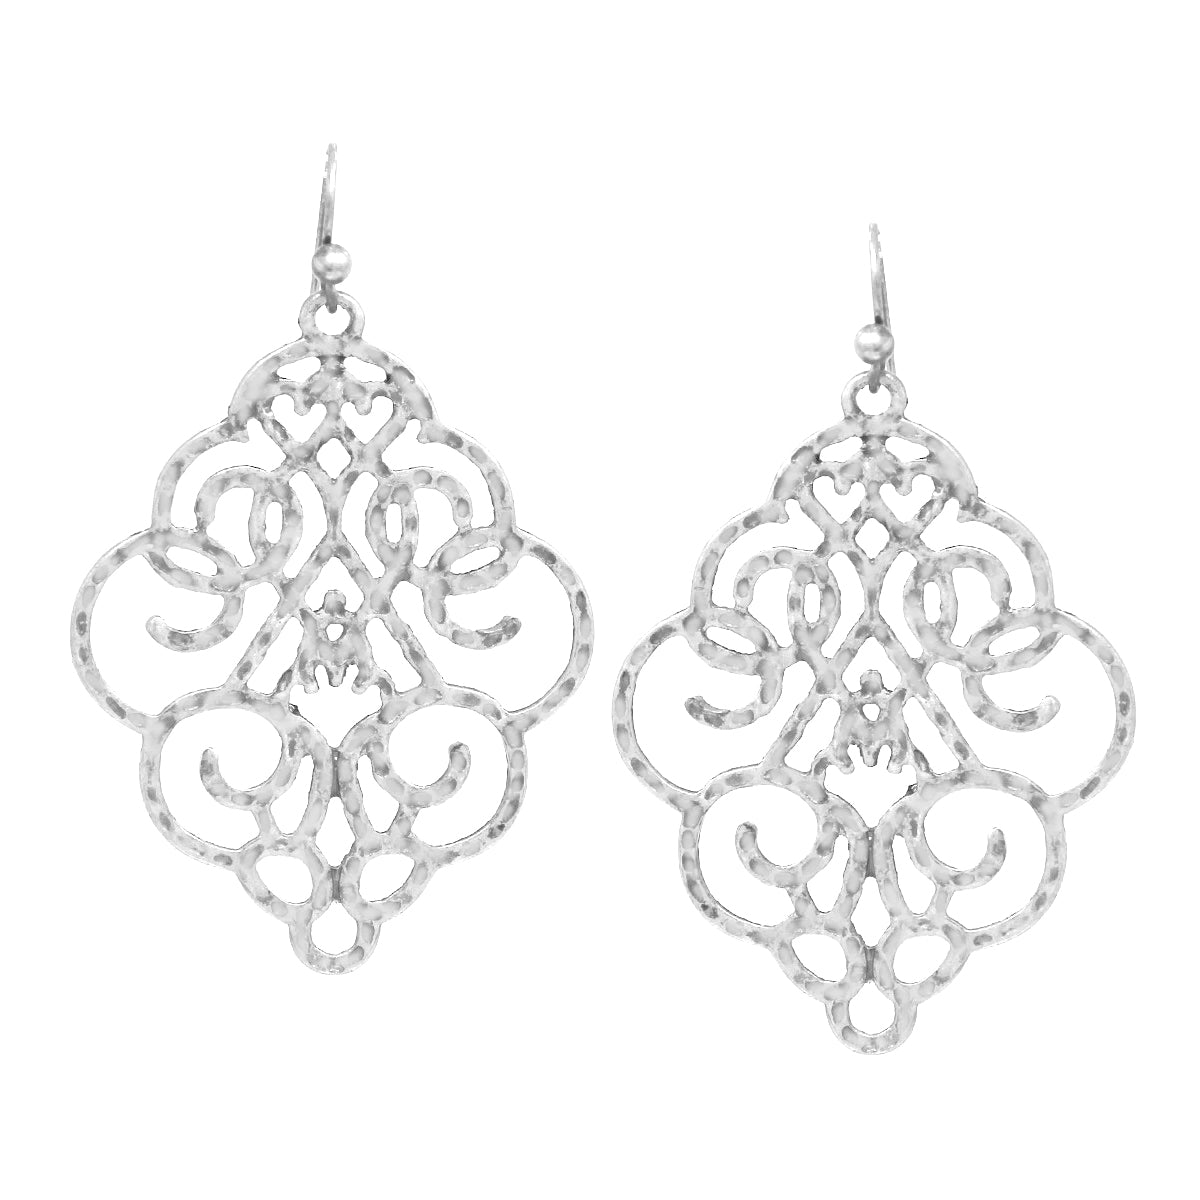 Textured Metal Filigree Drop Earrings